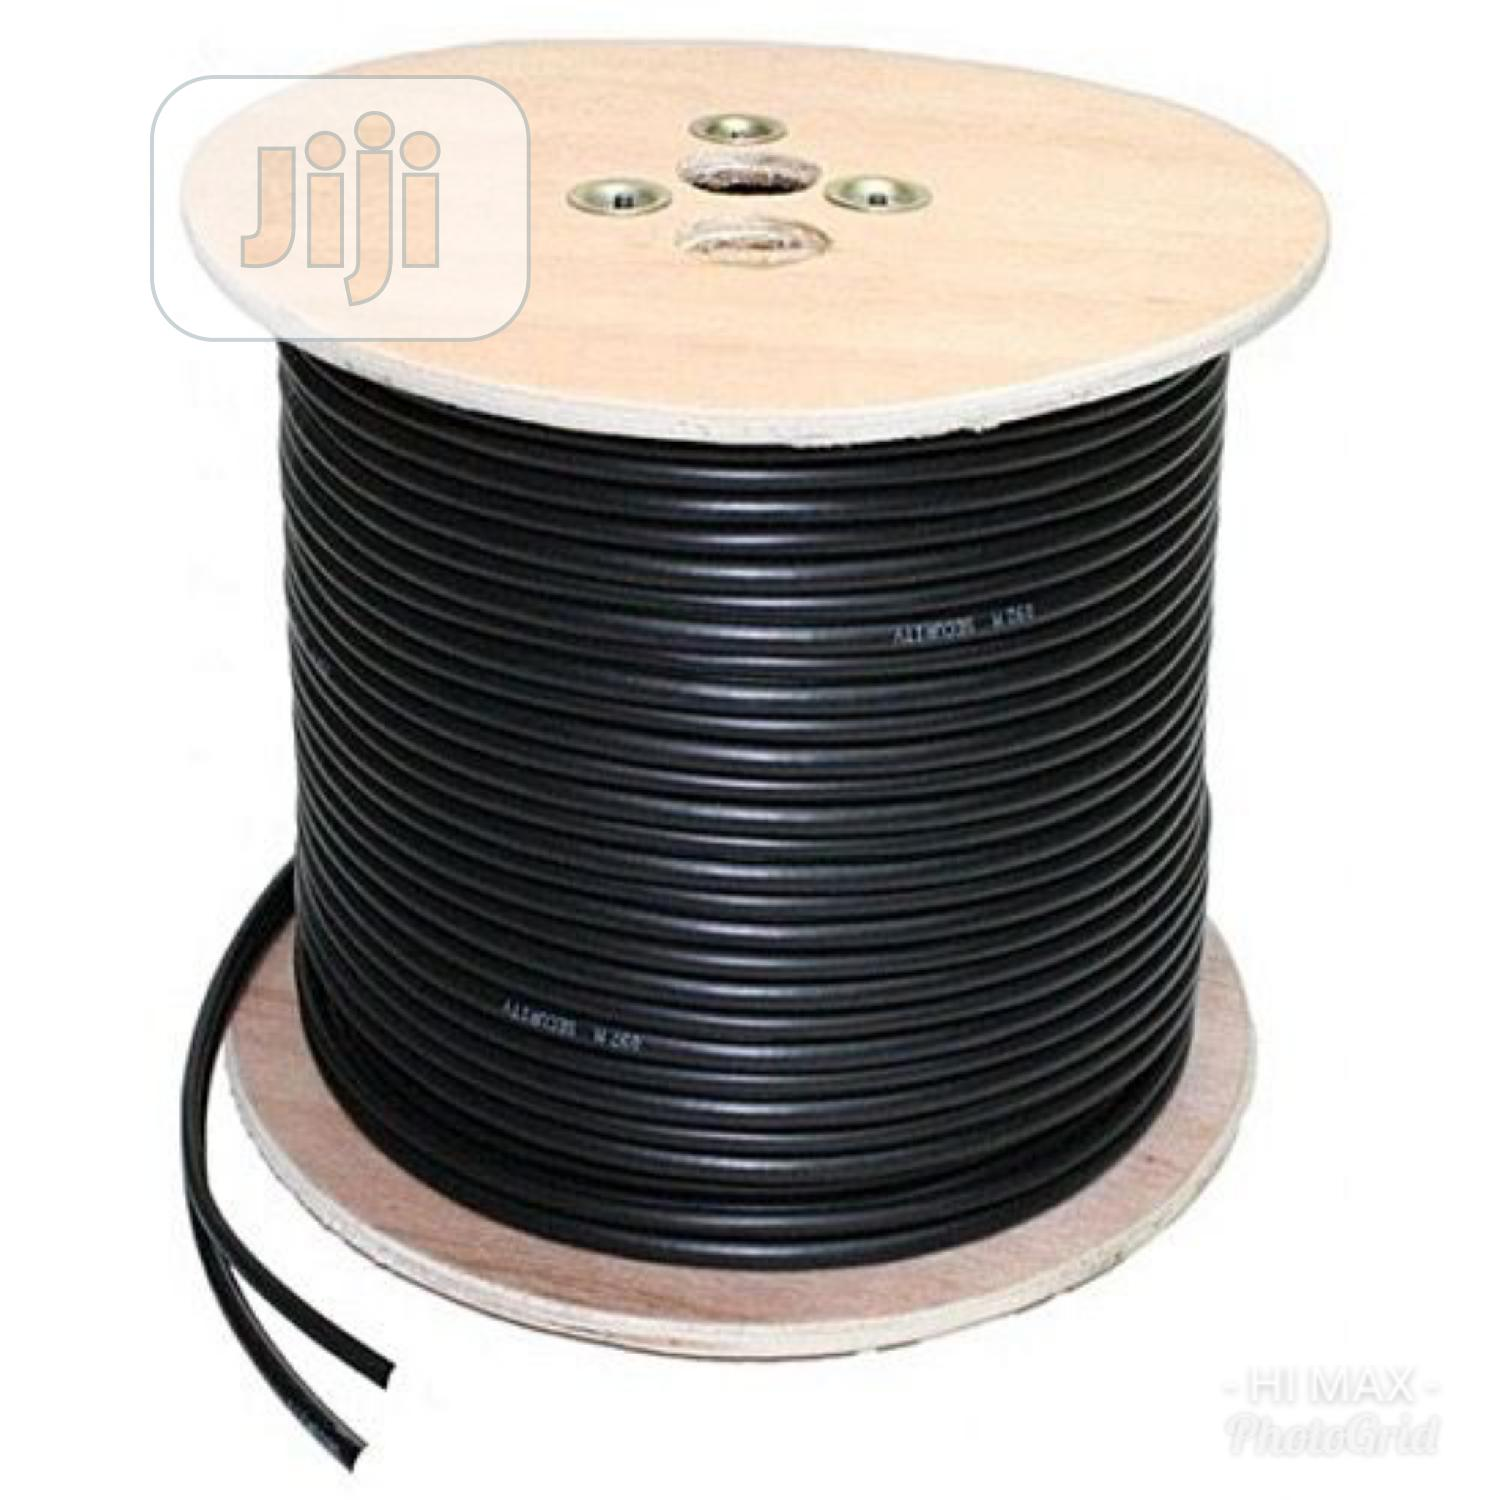 Rg59 100% Copper Coaxial Cable With Power - 305meters